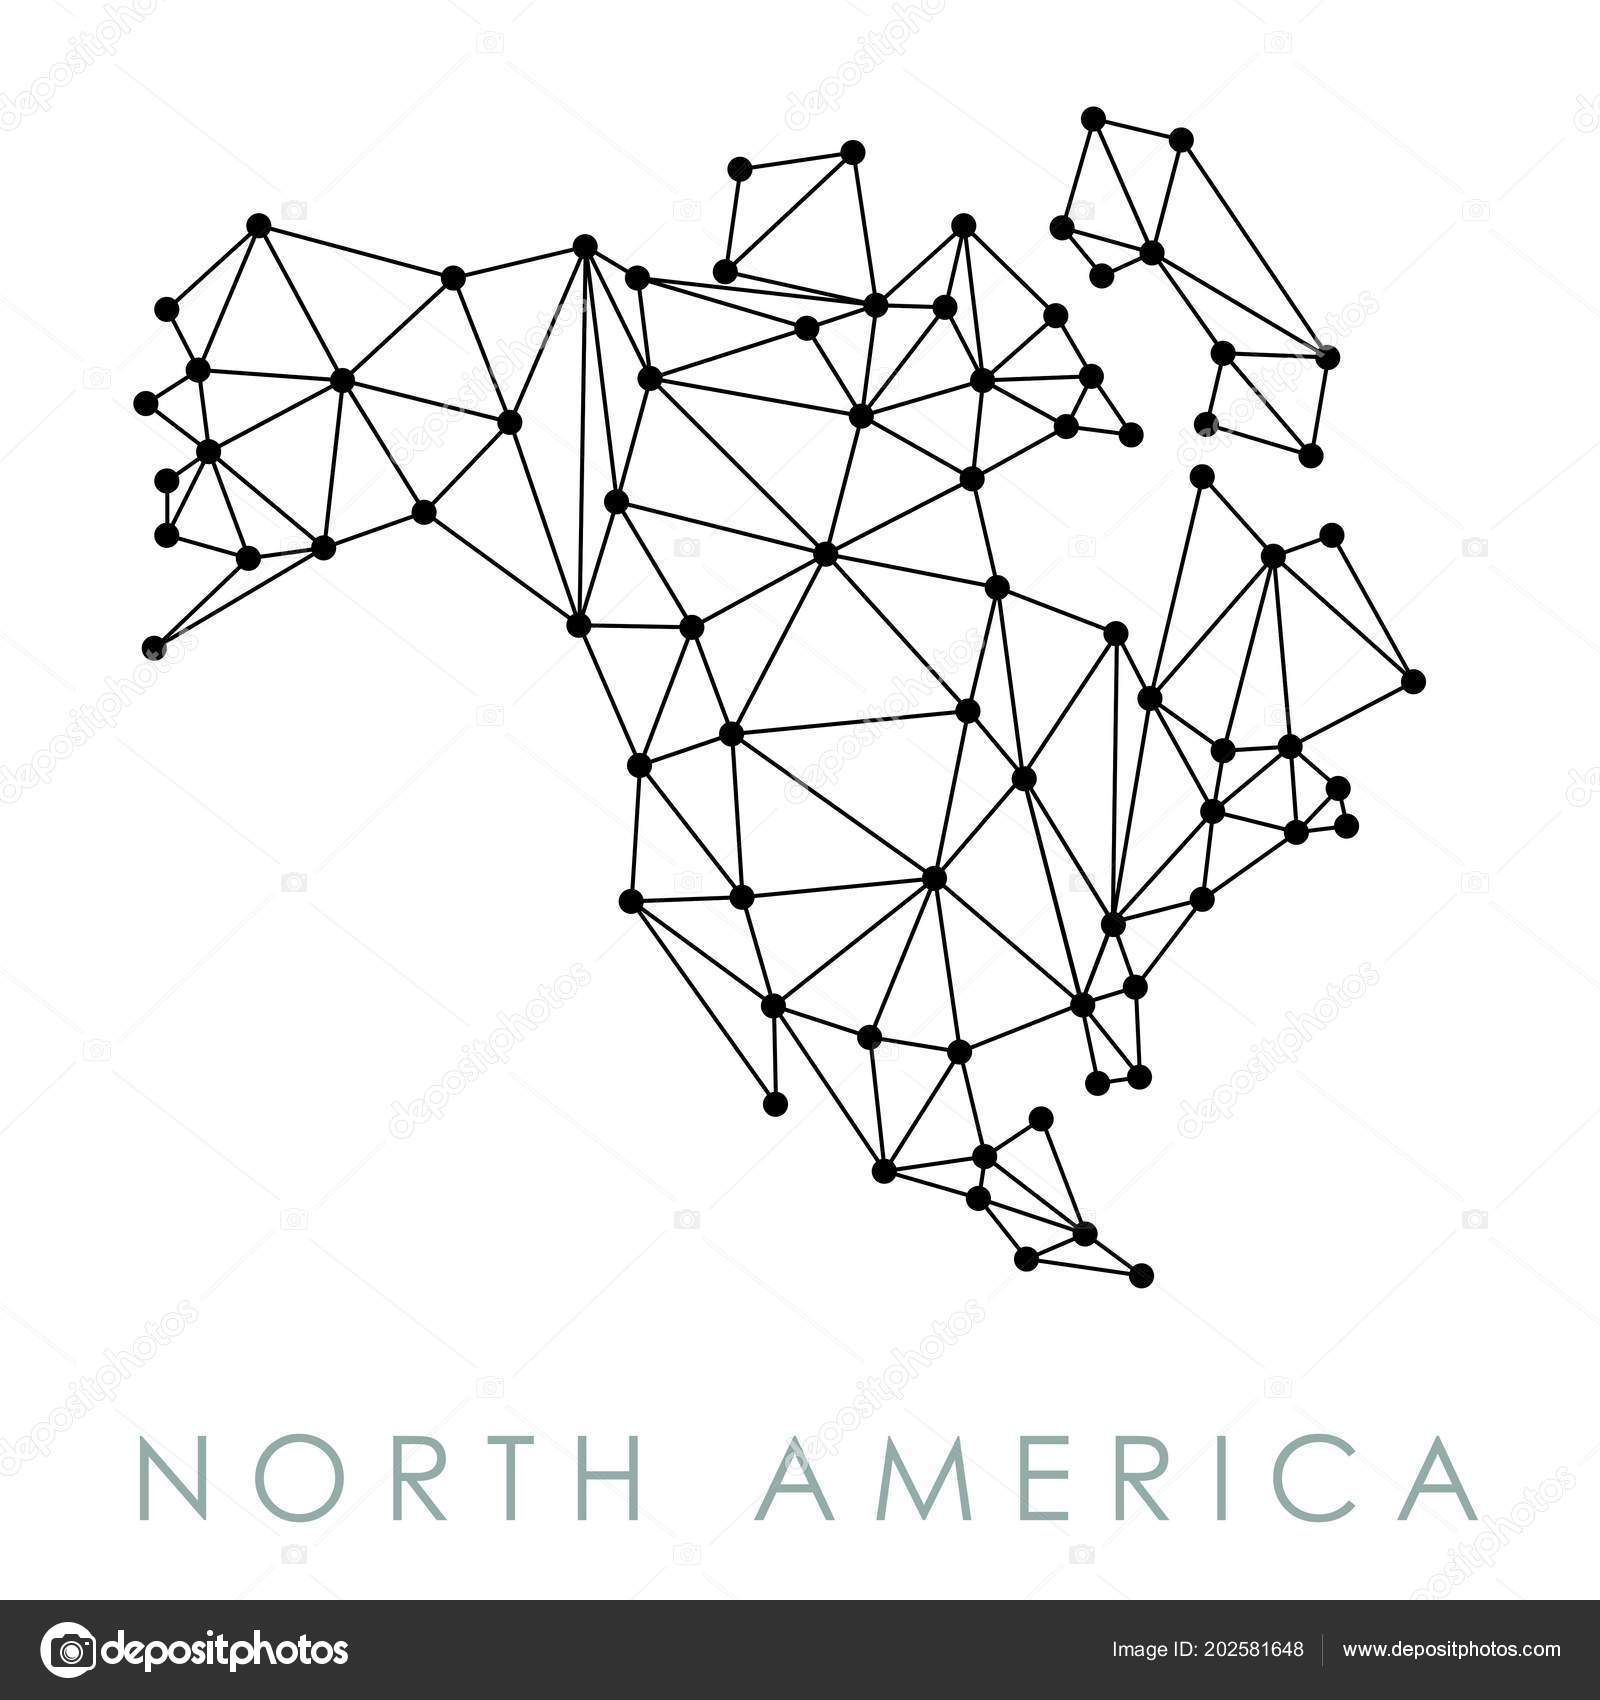 North America Simple Map Vector Low Poly Geometric Style